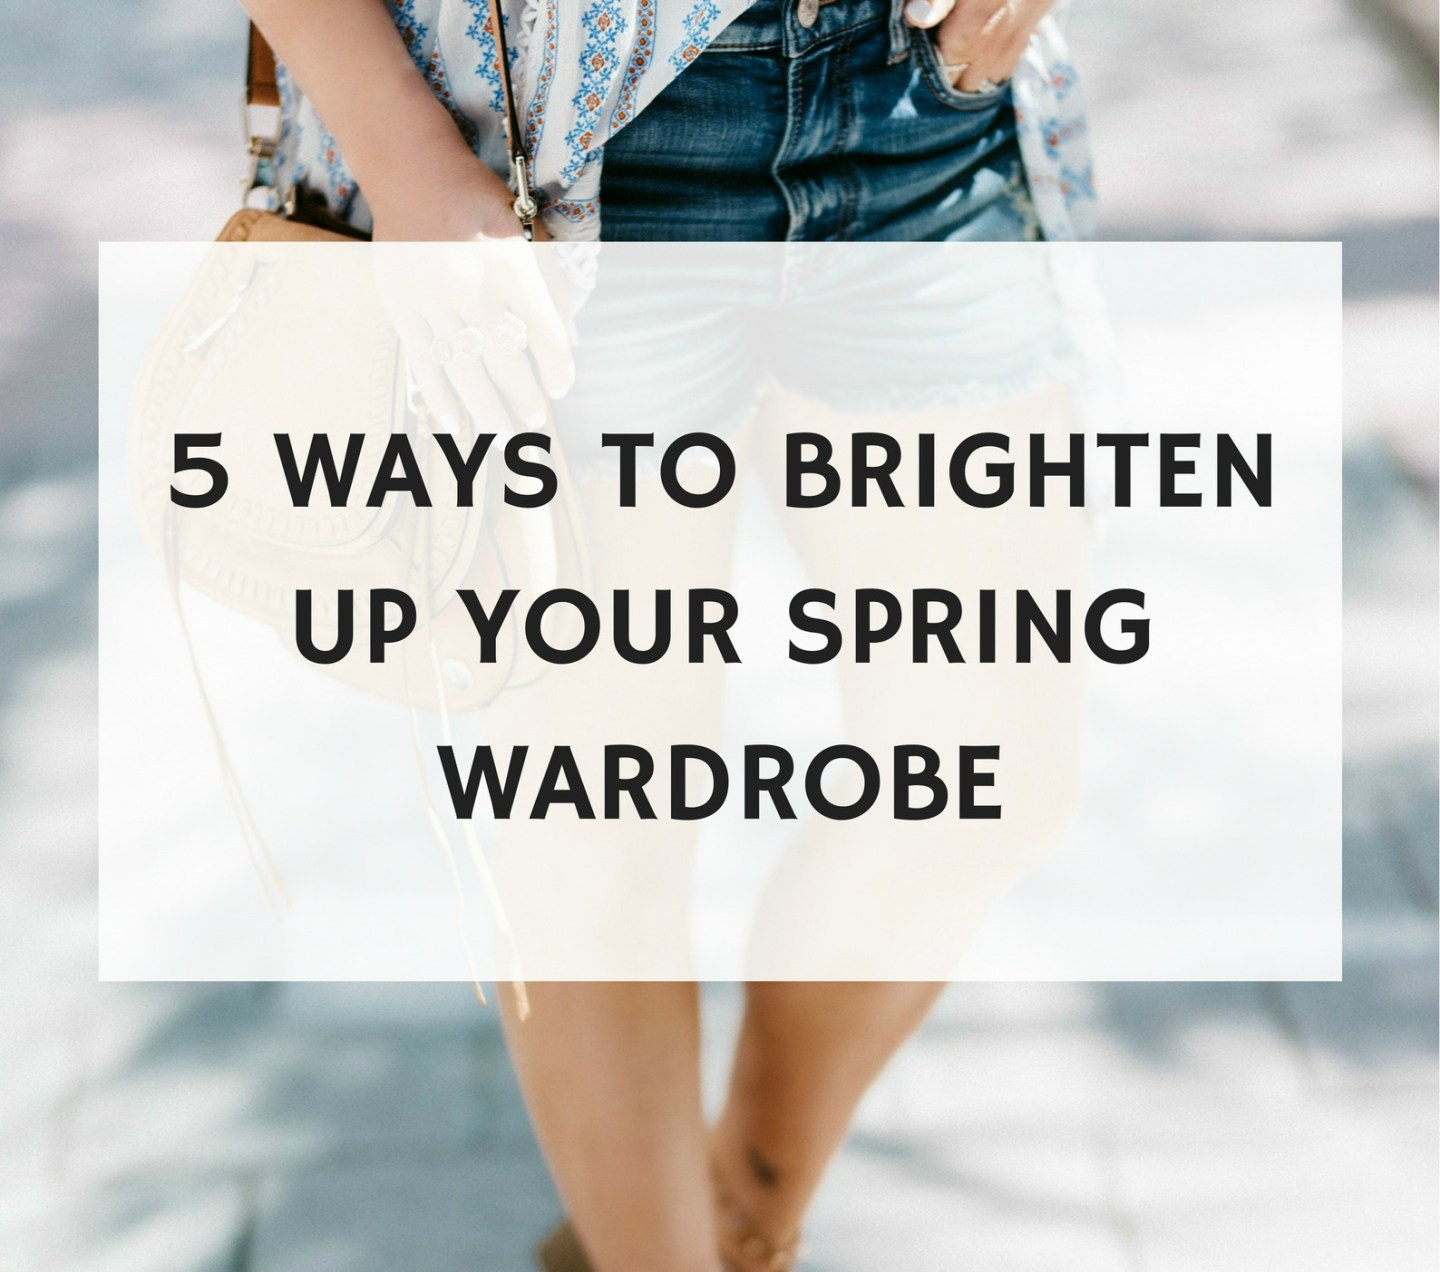 5 Simple Ways to Brighten Up Your Spring Wardrobe